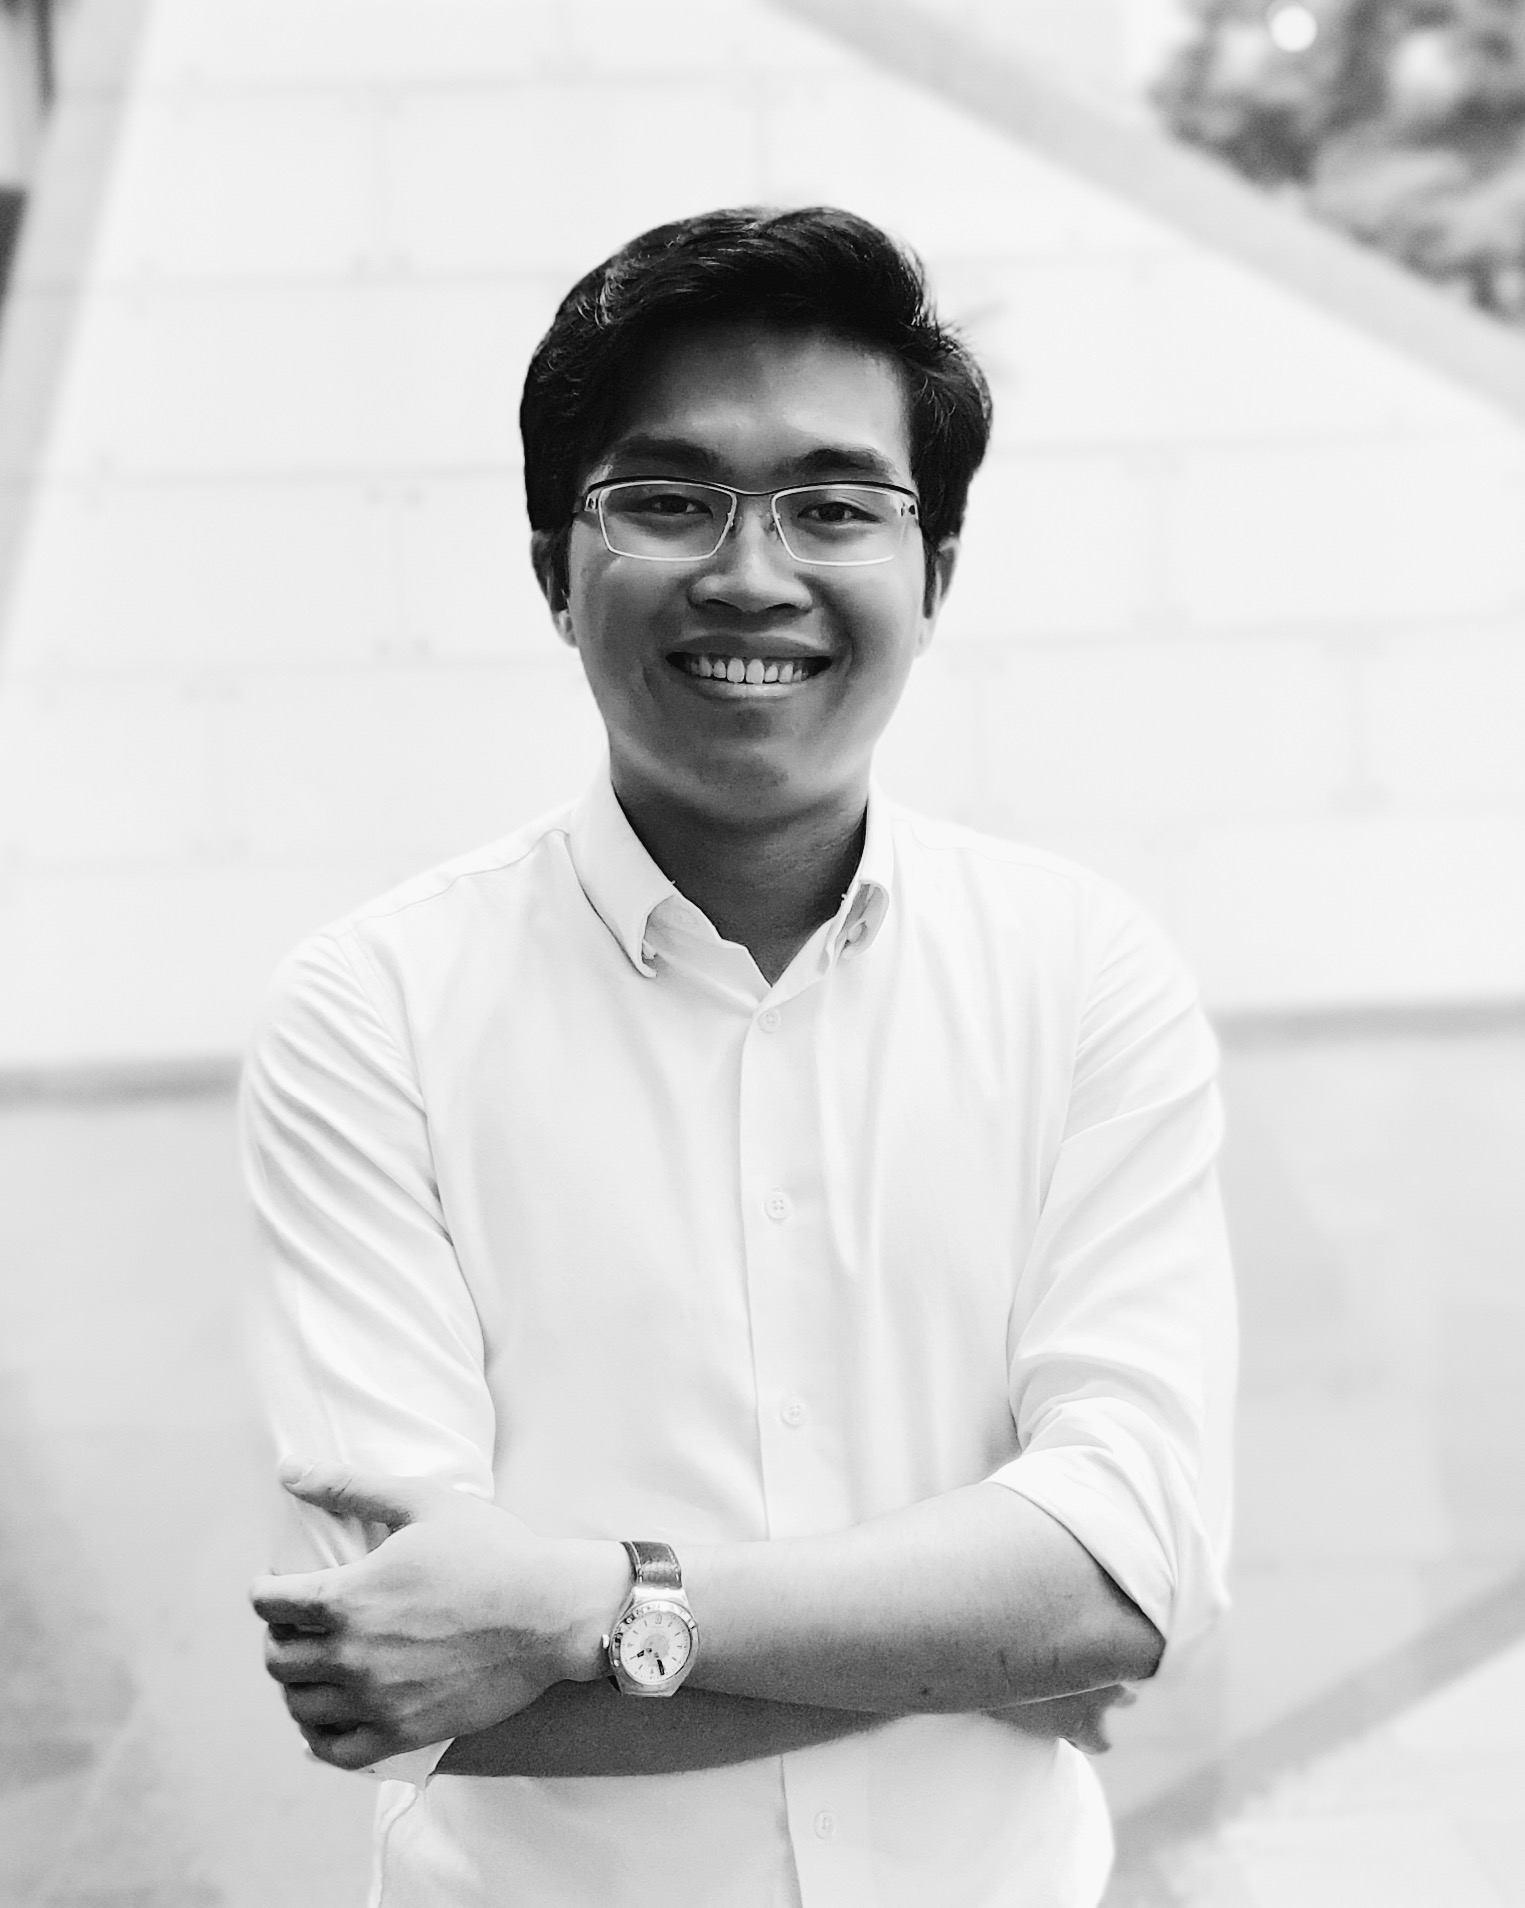 Nicholas Chng studies Law at Singapore Management University. His work has been awarded a Commendation from the Foyle Young Poets of the Year Award, as well as appeared in  Ceriph ,  QLRS ,  Softblow , and the exhibition  MICROCOSMOS  by studioKALEIDO. His manuscript-in-progress is titled  disquiet.